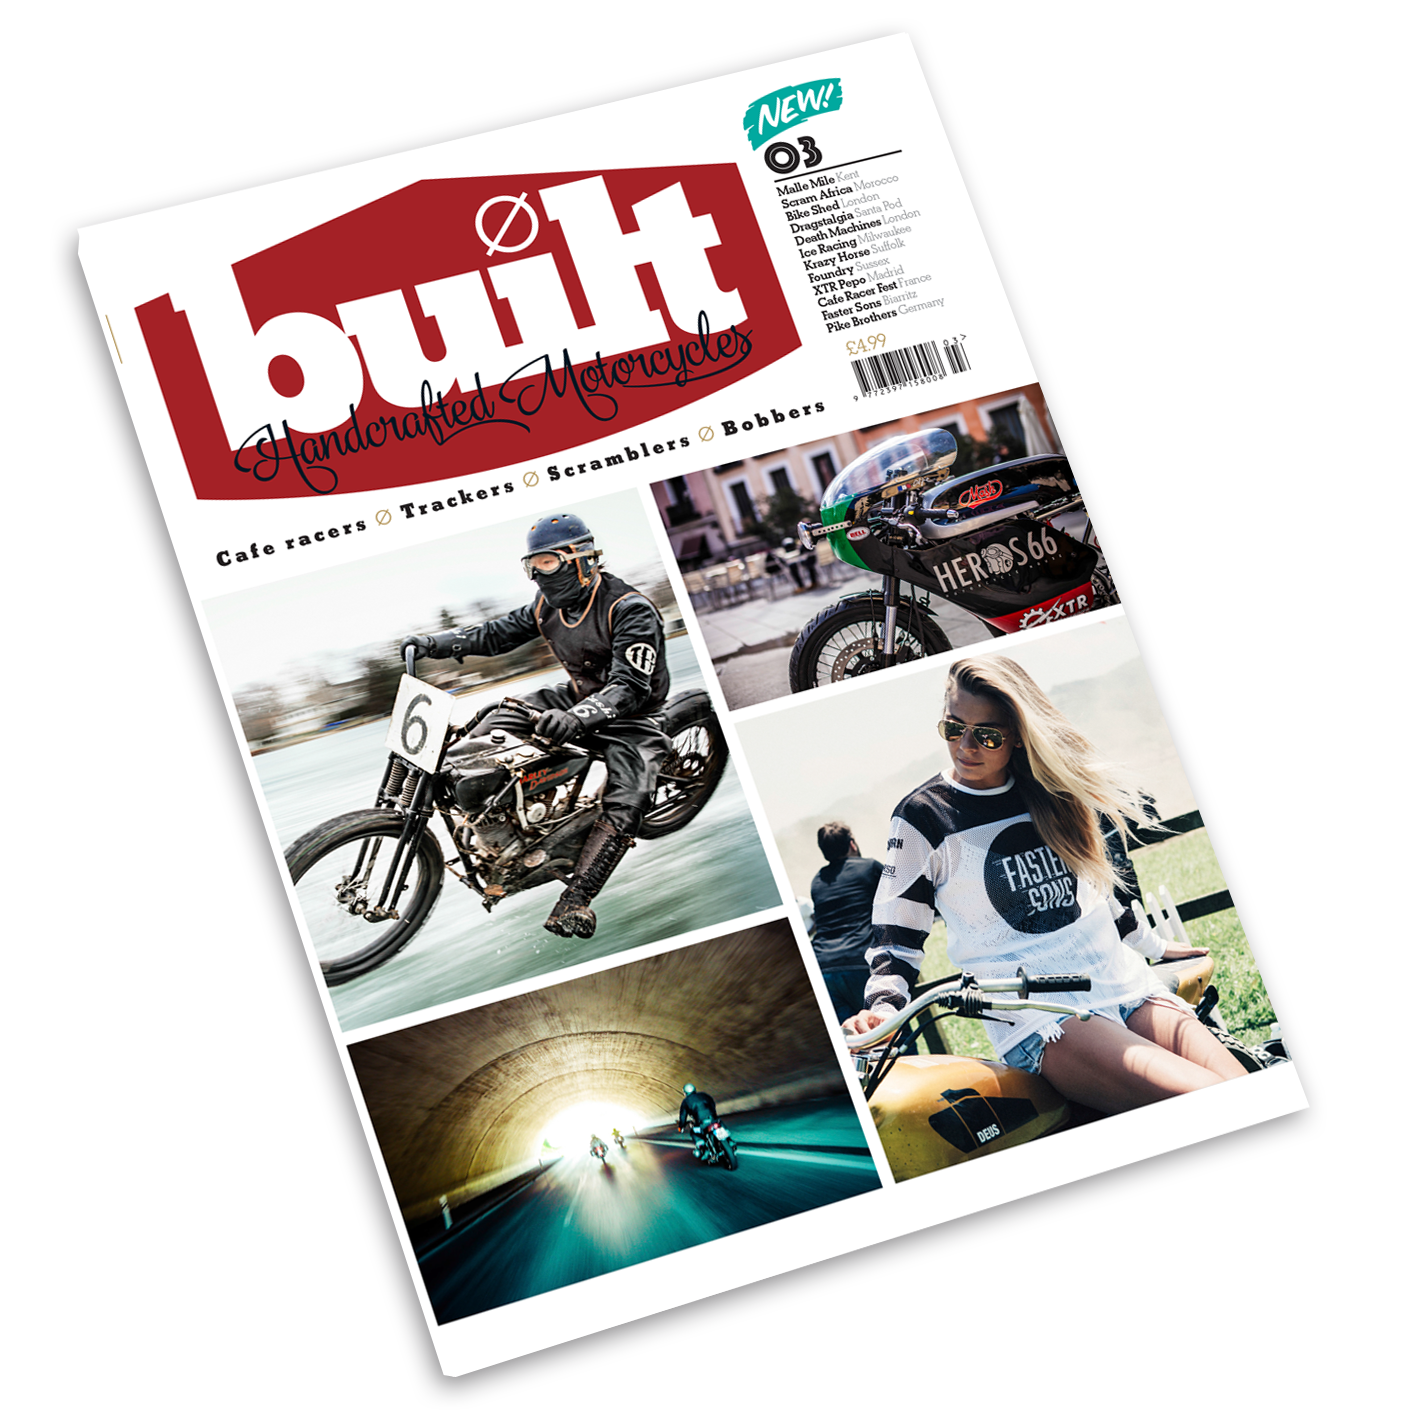 Built issue 3 is available for pre-order